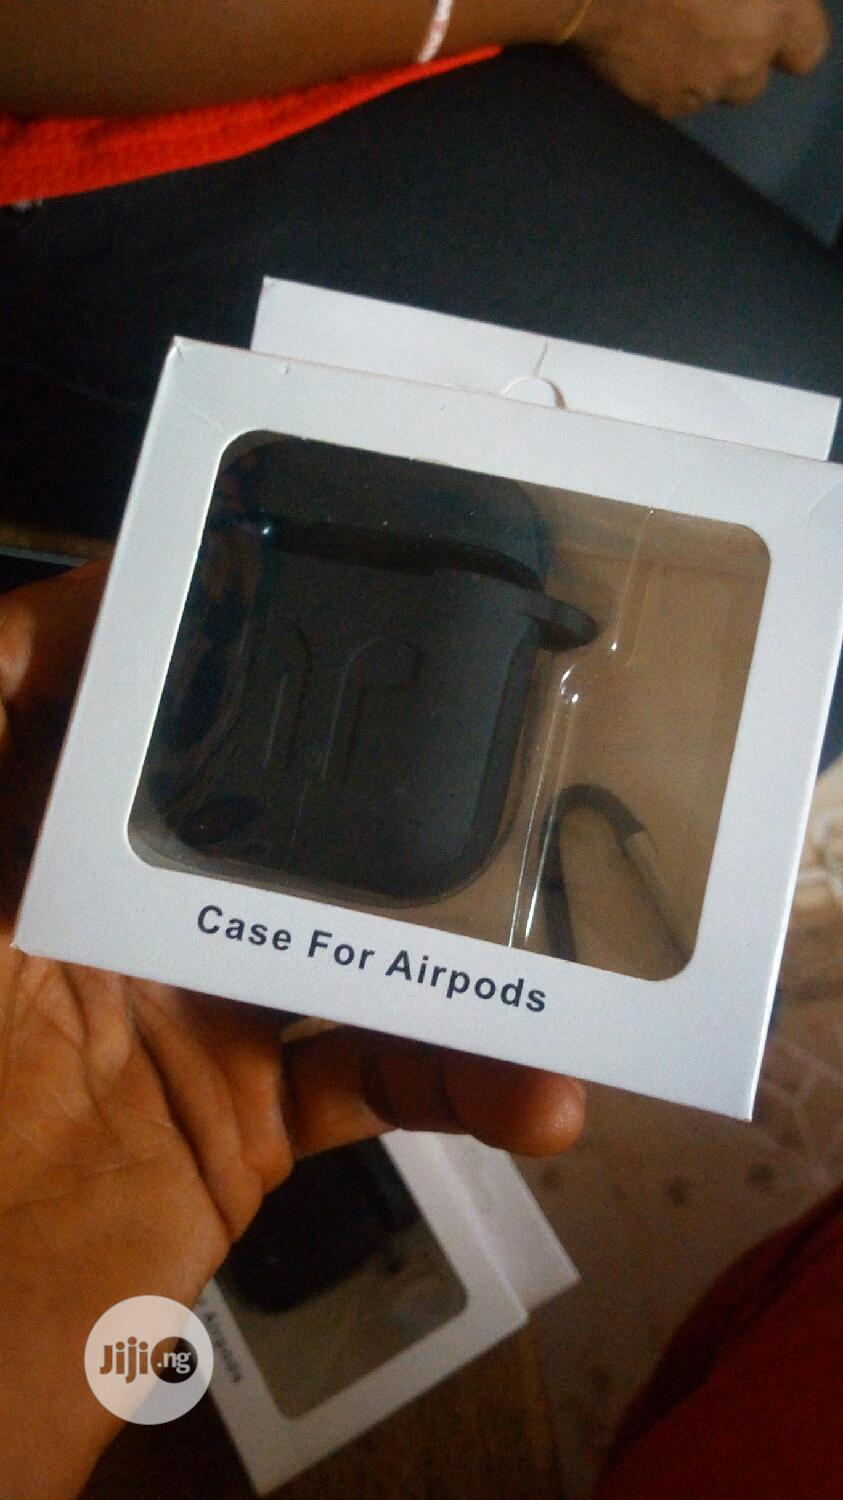 Air Pod Case | Accessories for Mobile Phones & Tablets for sale in Wuse, Abuja (FCT) State, Nigeria